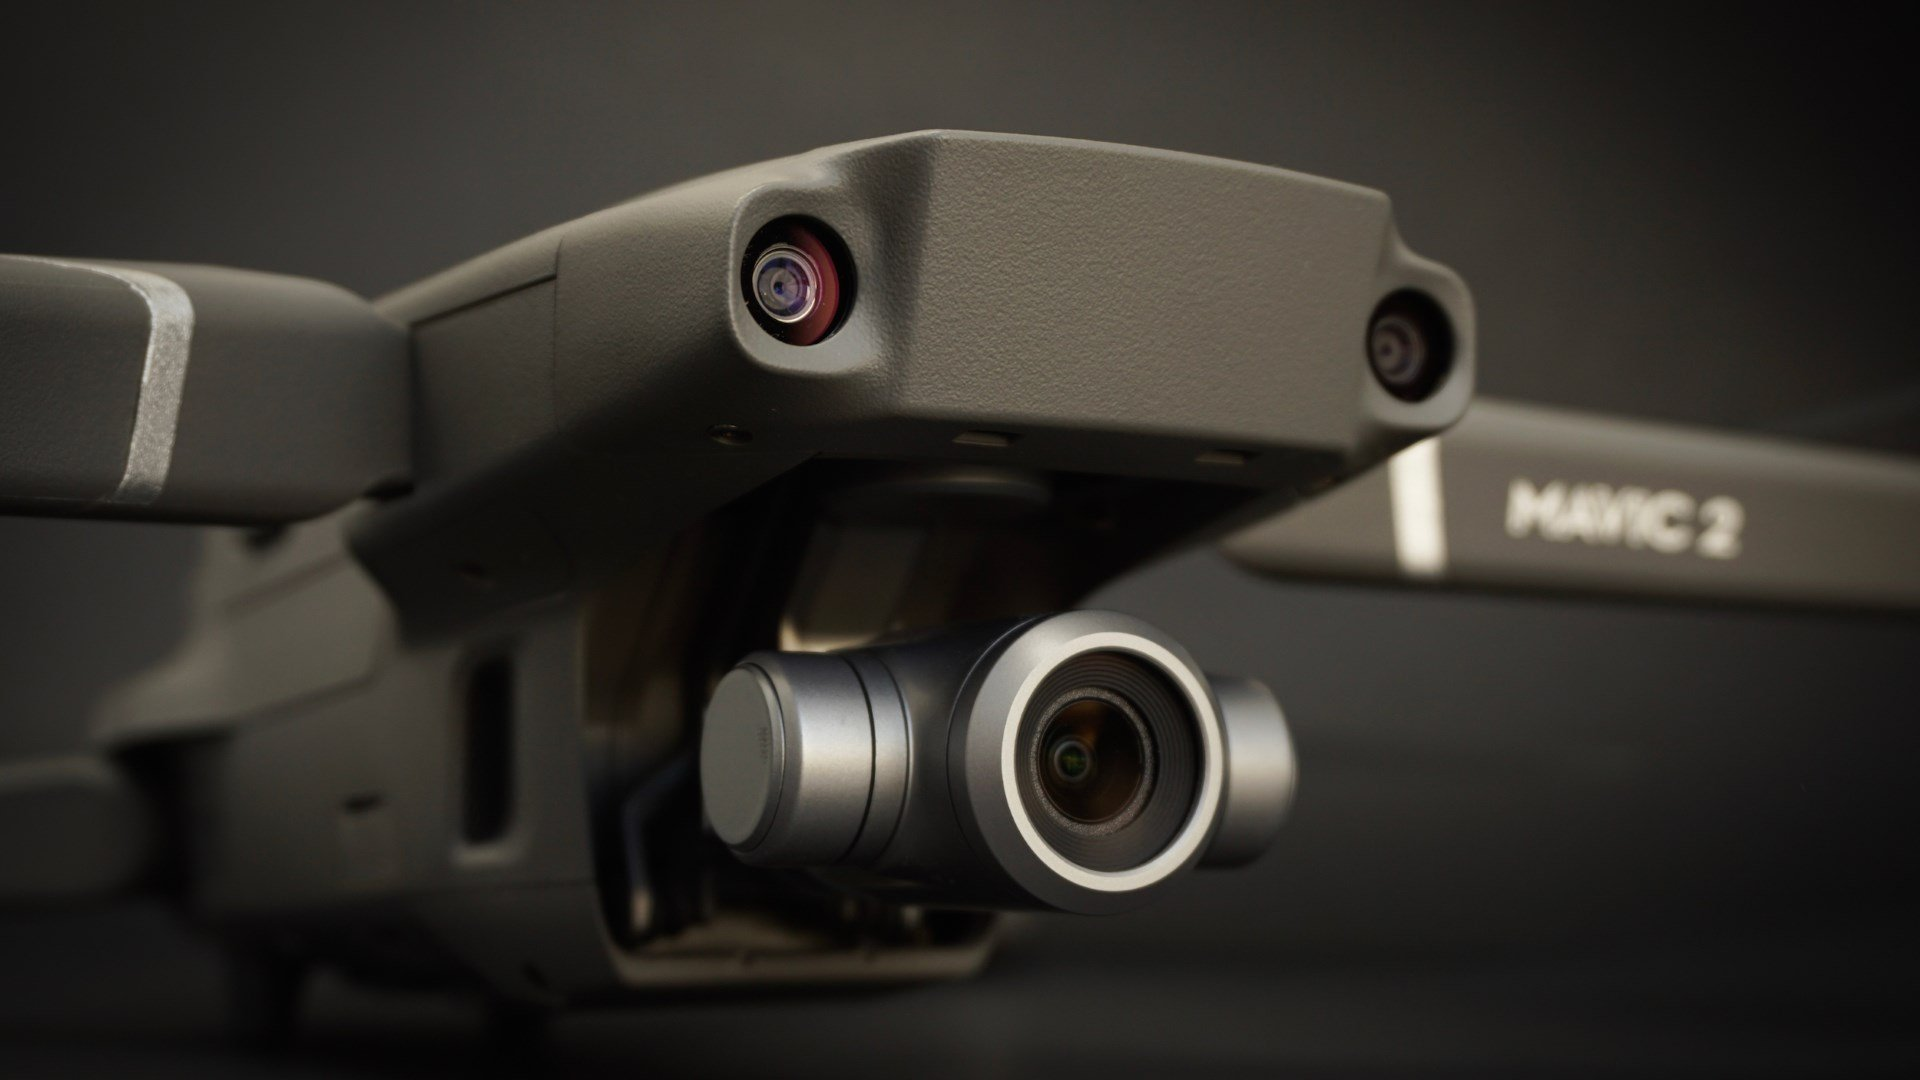 Introducing Mavic 2 Drone The Quadcopter That Files On Its Own